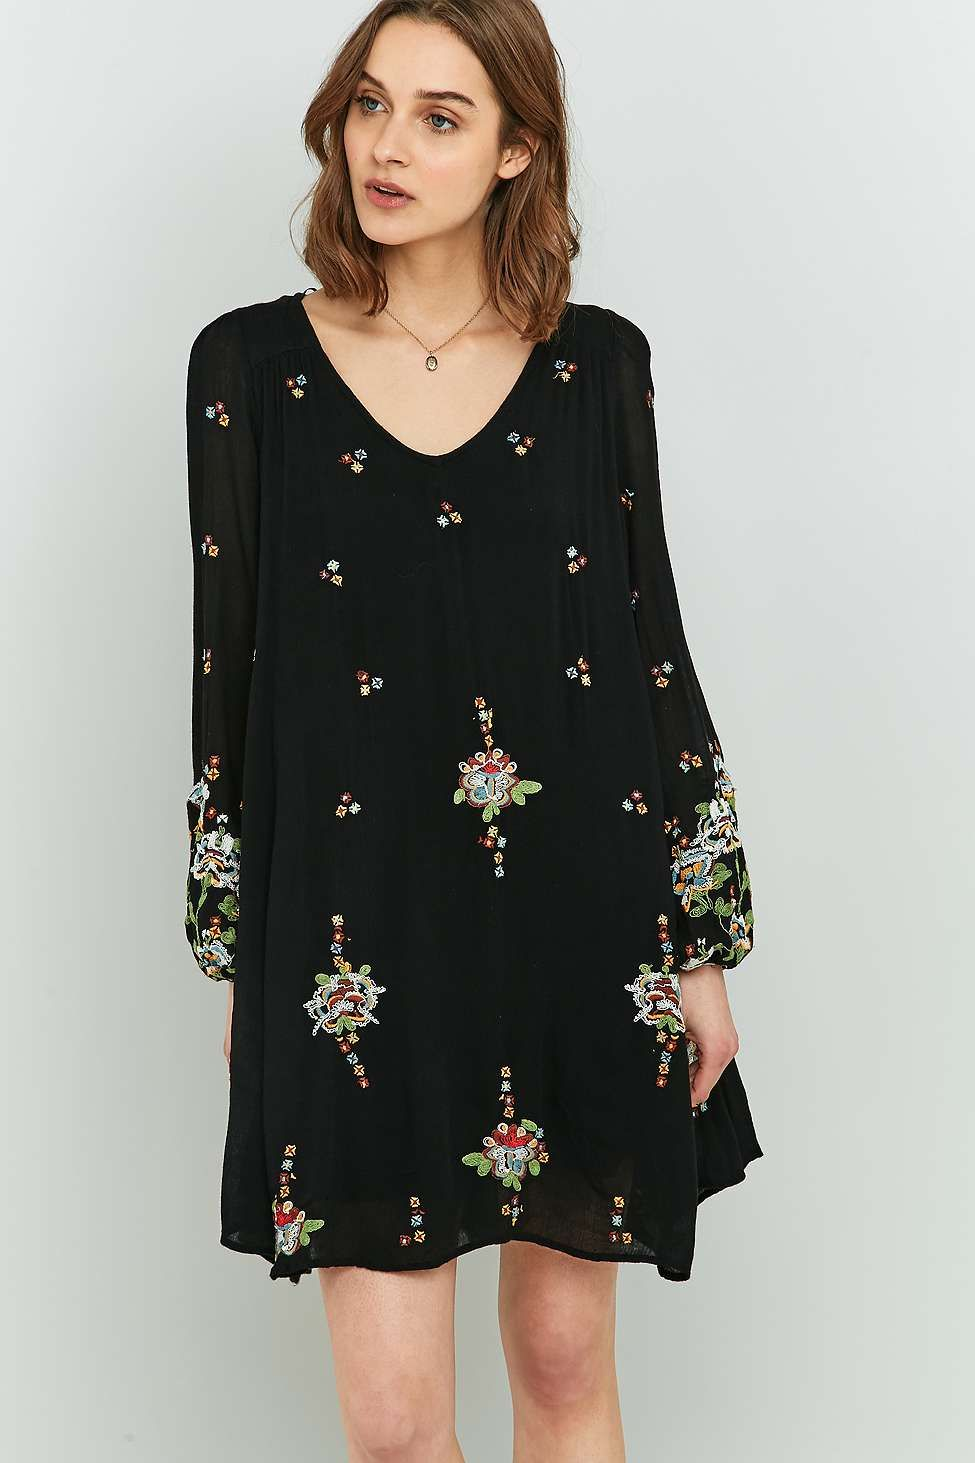 69288c53c0f89 Free People Oxford Embroidered Mini Dress | Senior Pictures ...